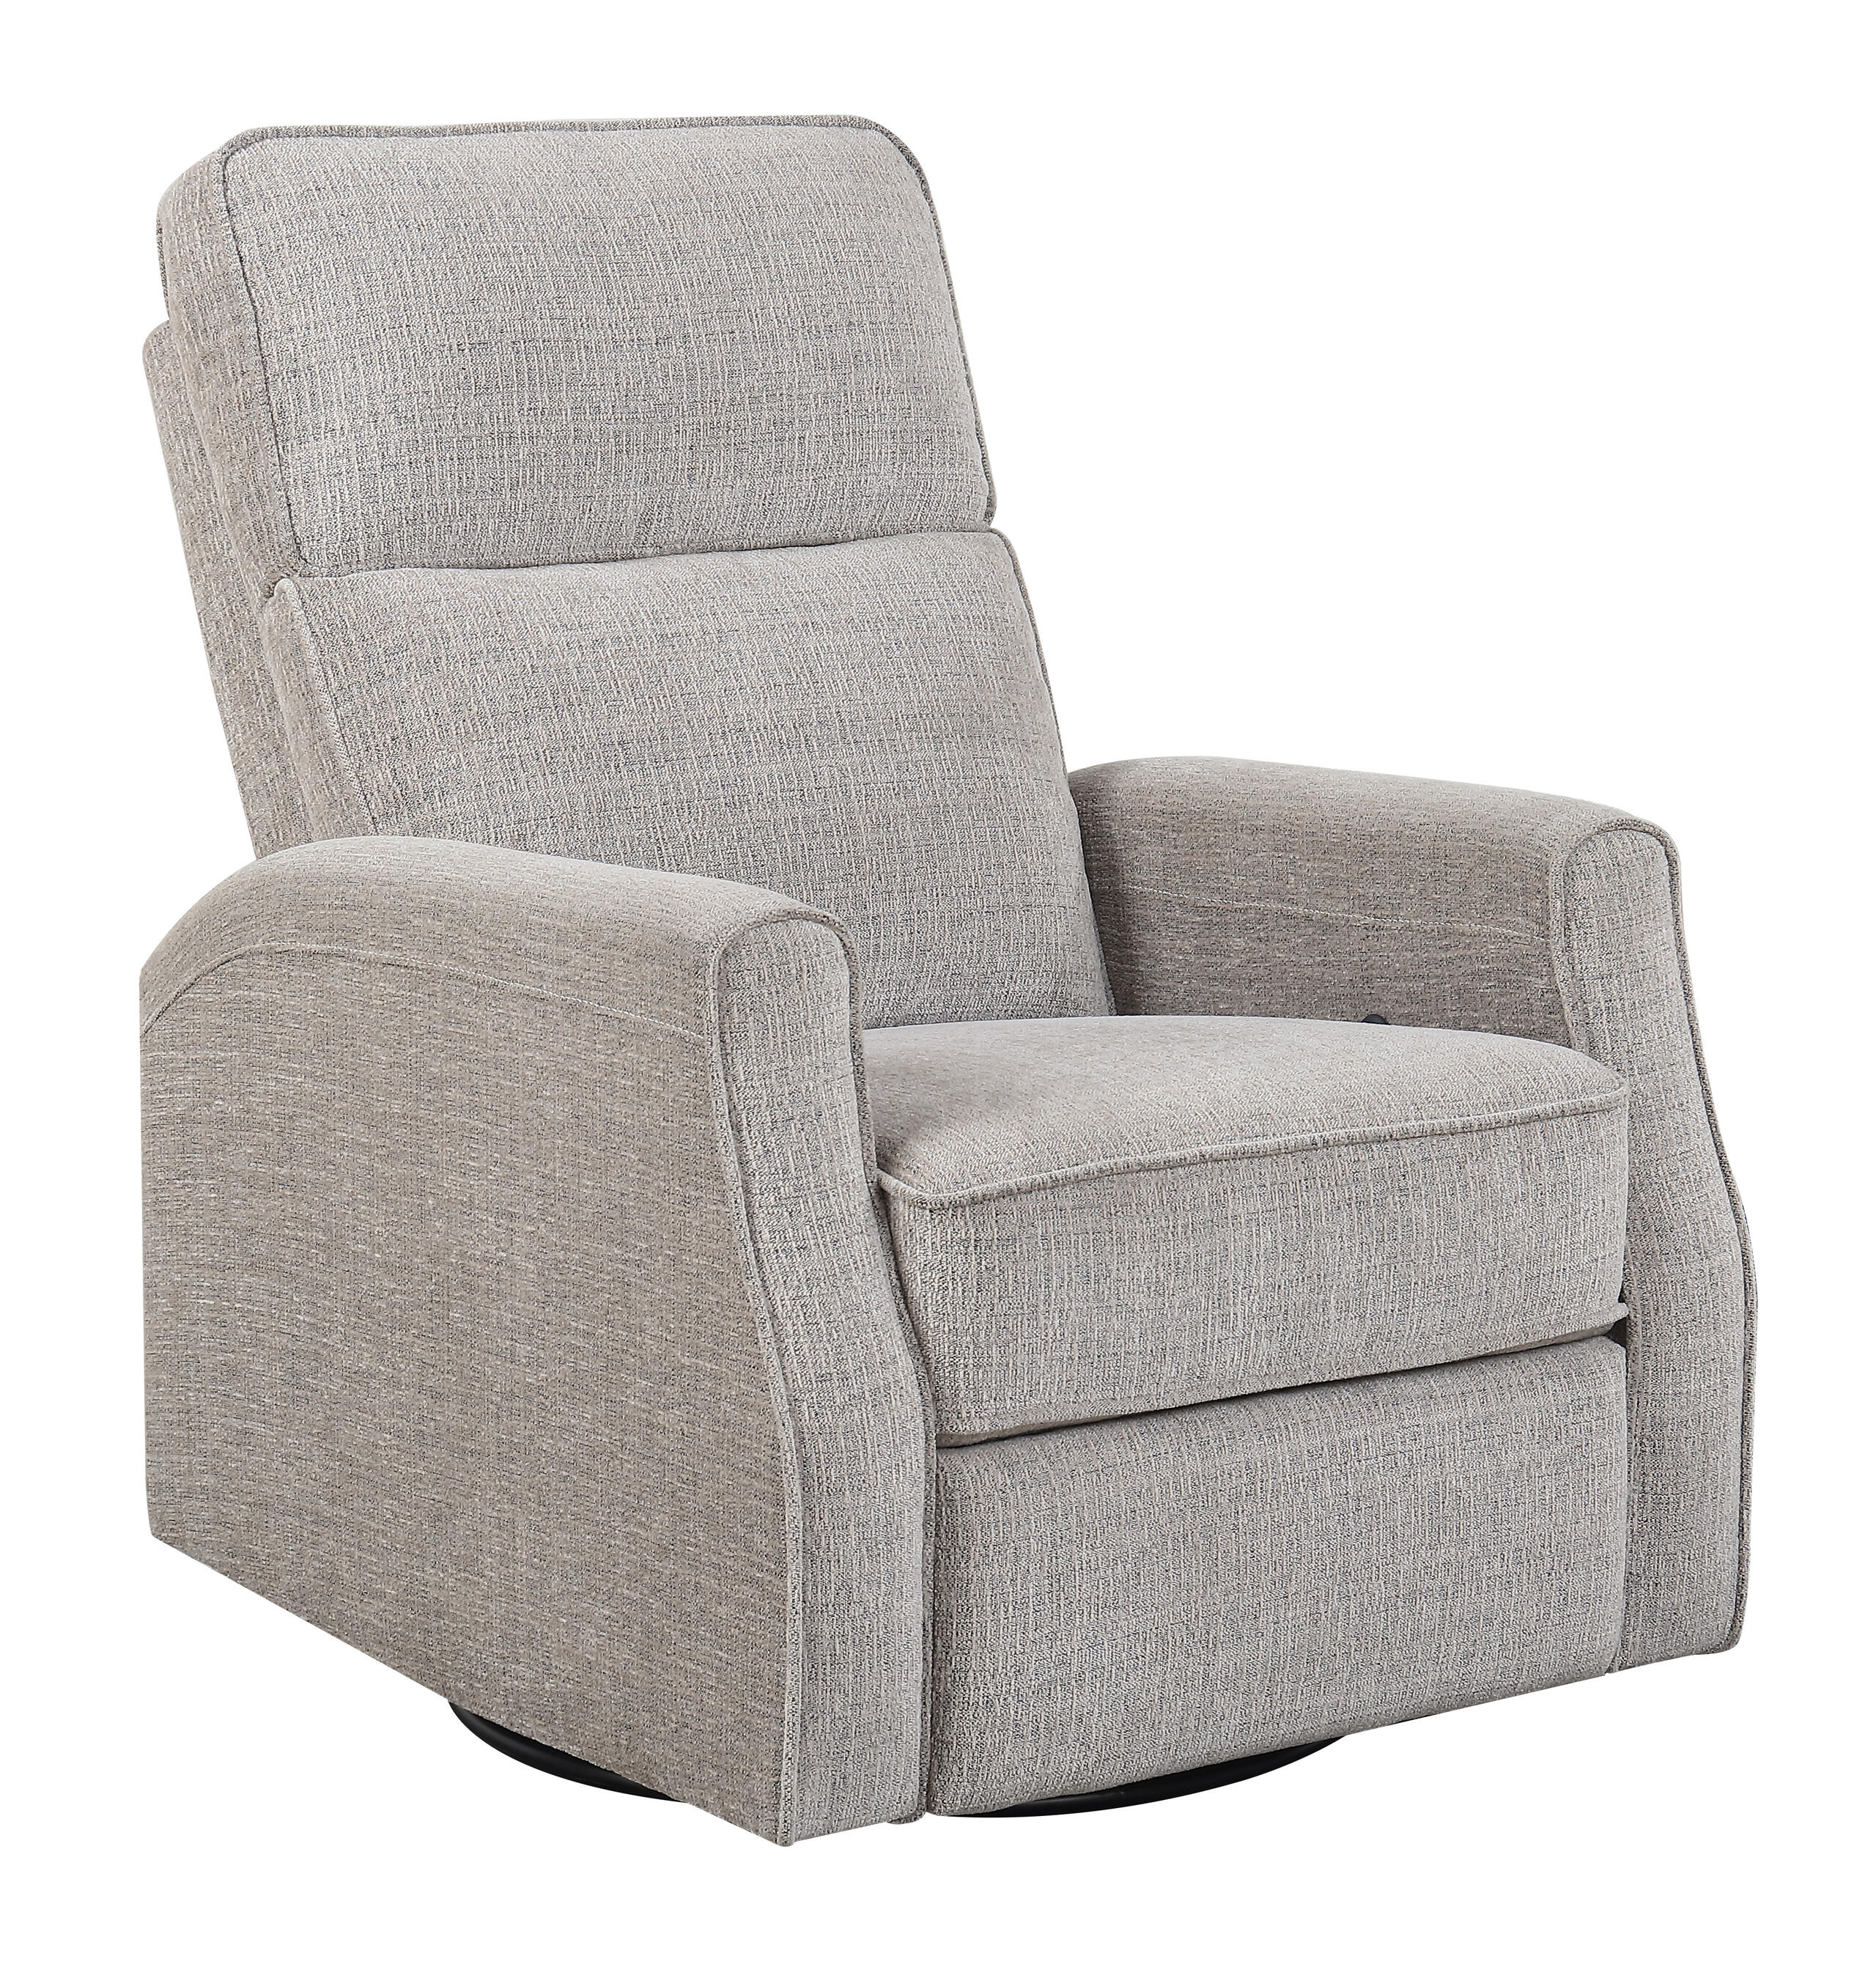 Emerald Home FurnishingsTabor Swivel Gliding Recliner, Wheat U3299-04-05